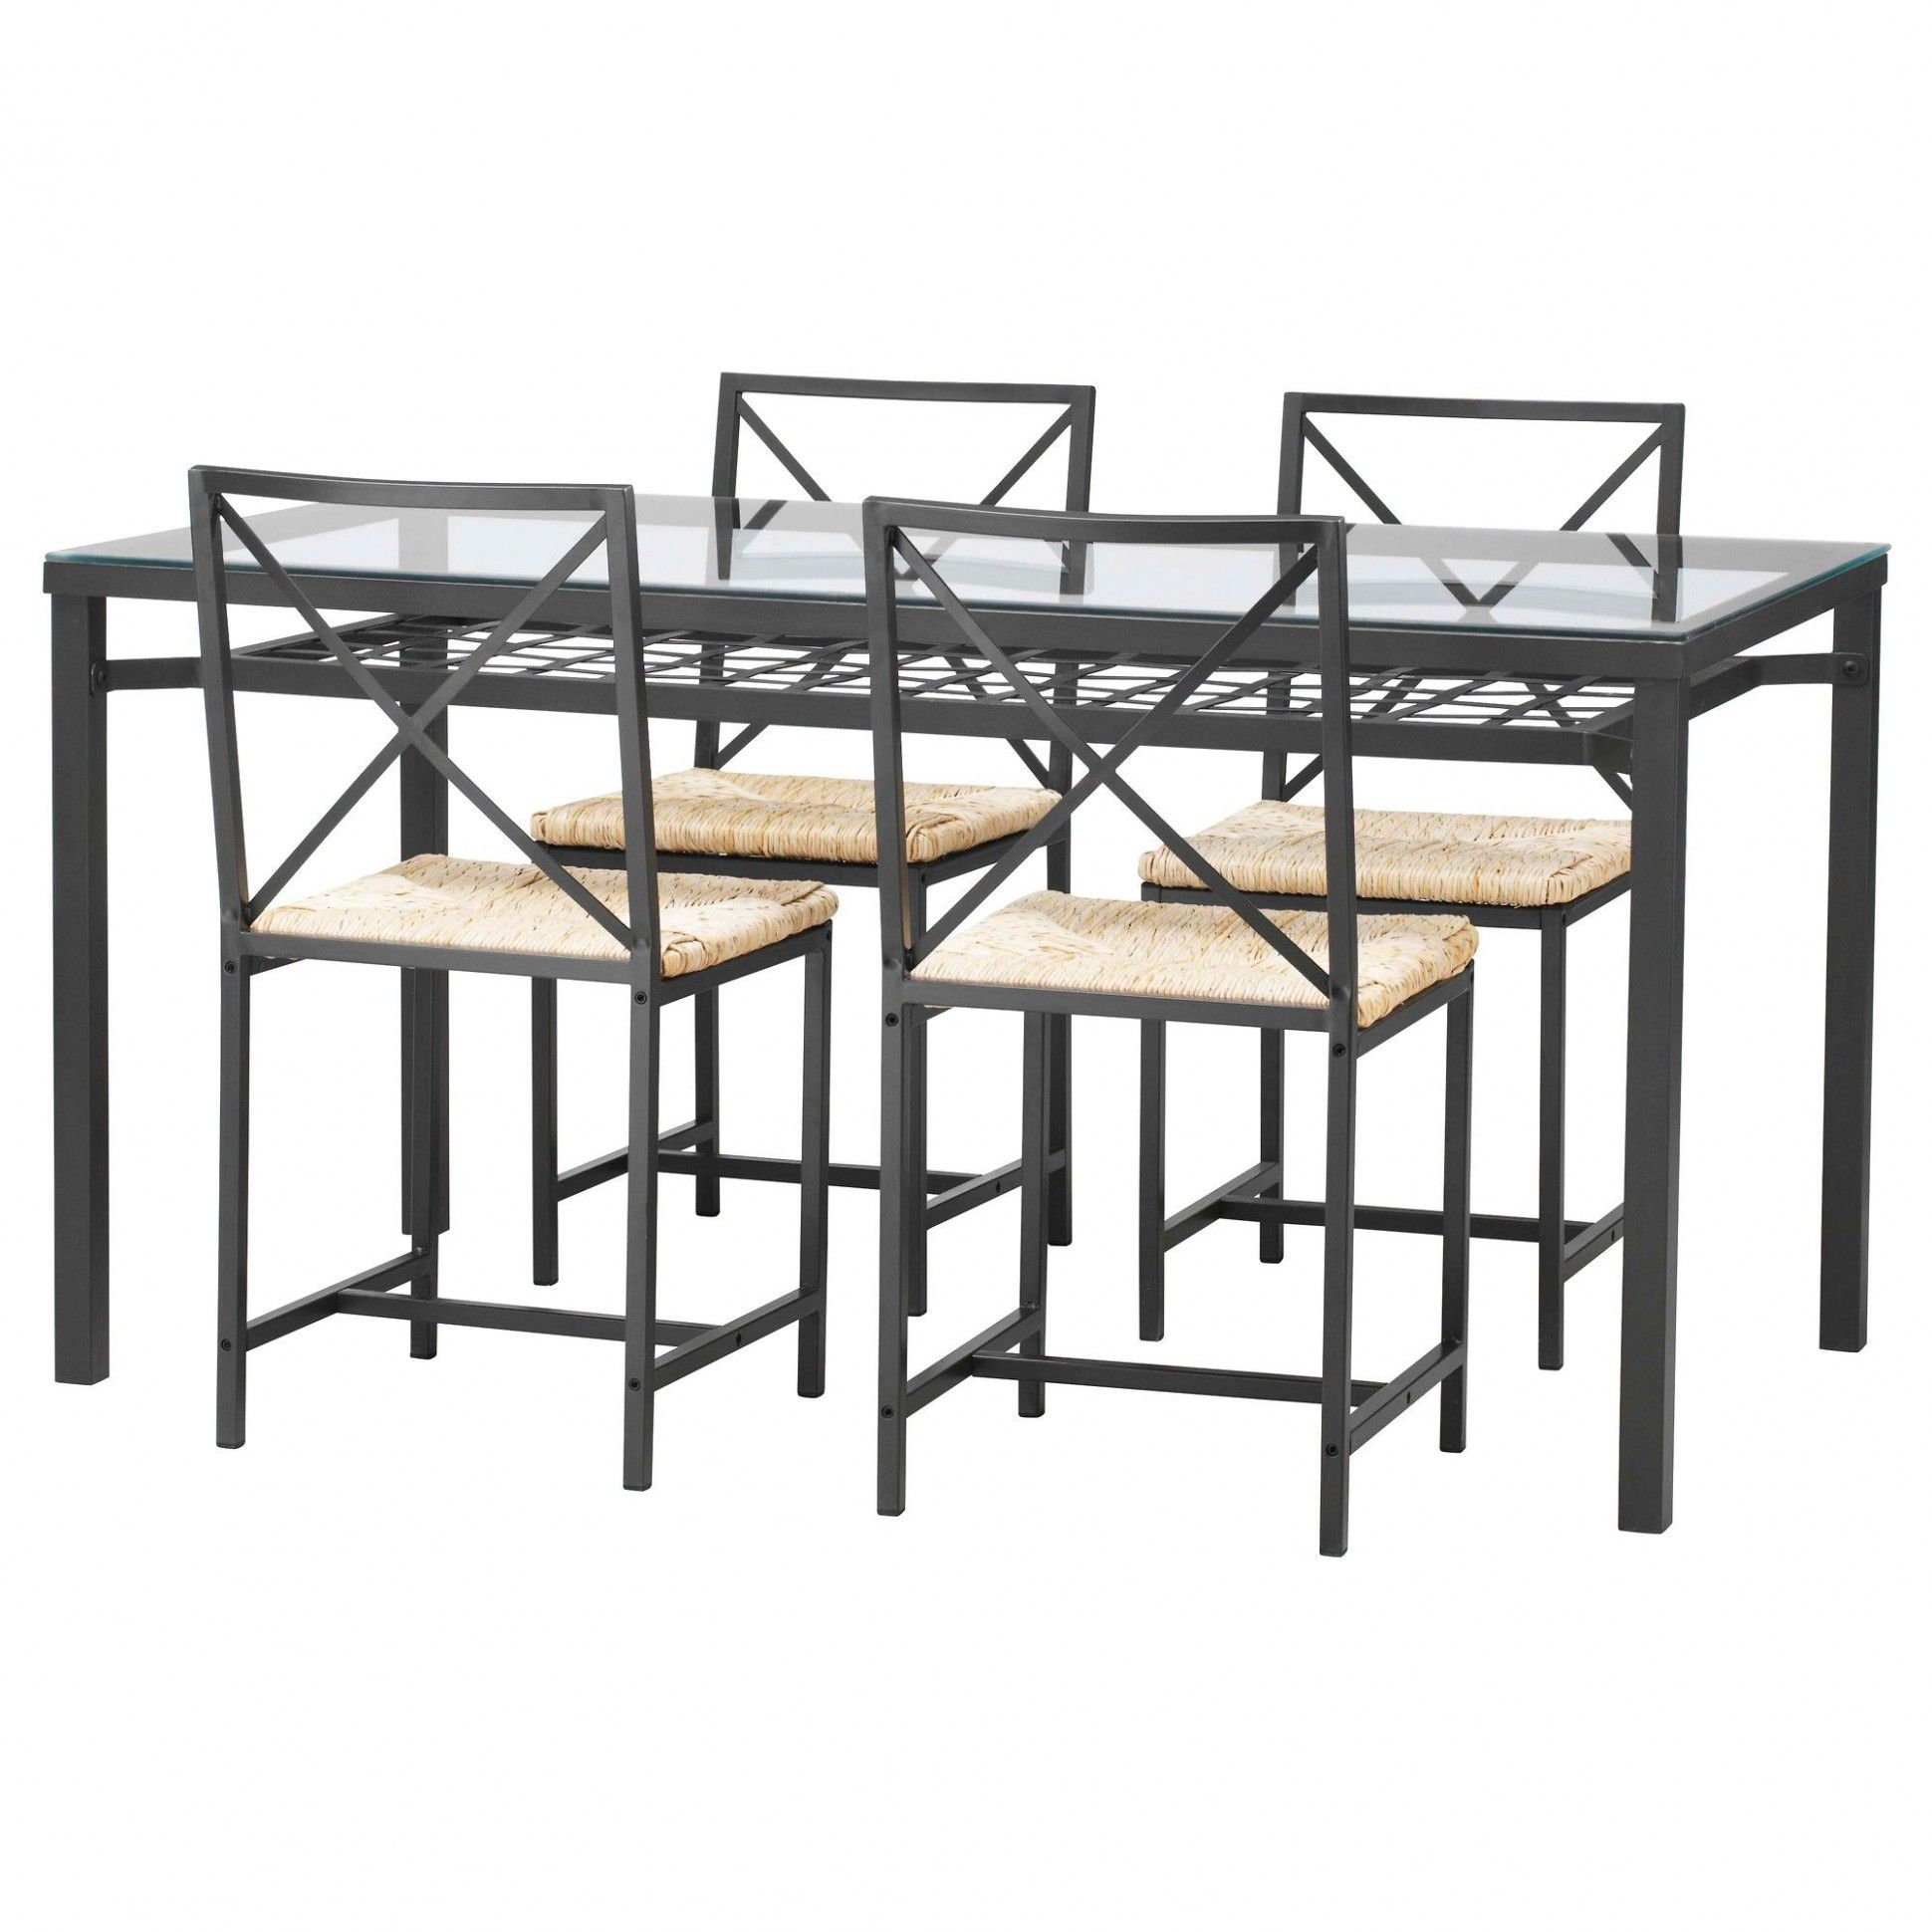 The Worst Advices Weve Heard For Ikea Glass Dining Table And 4